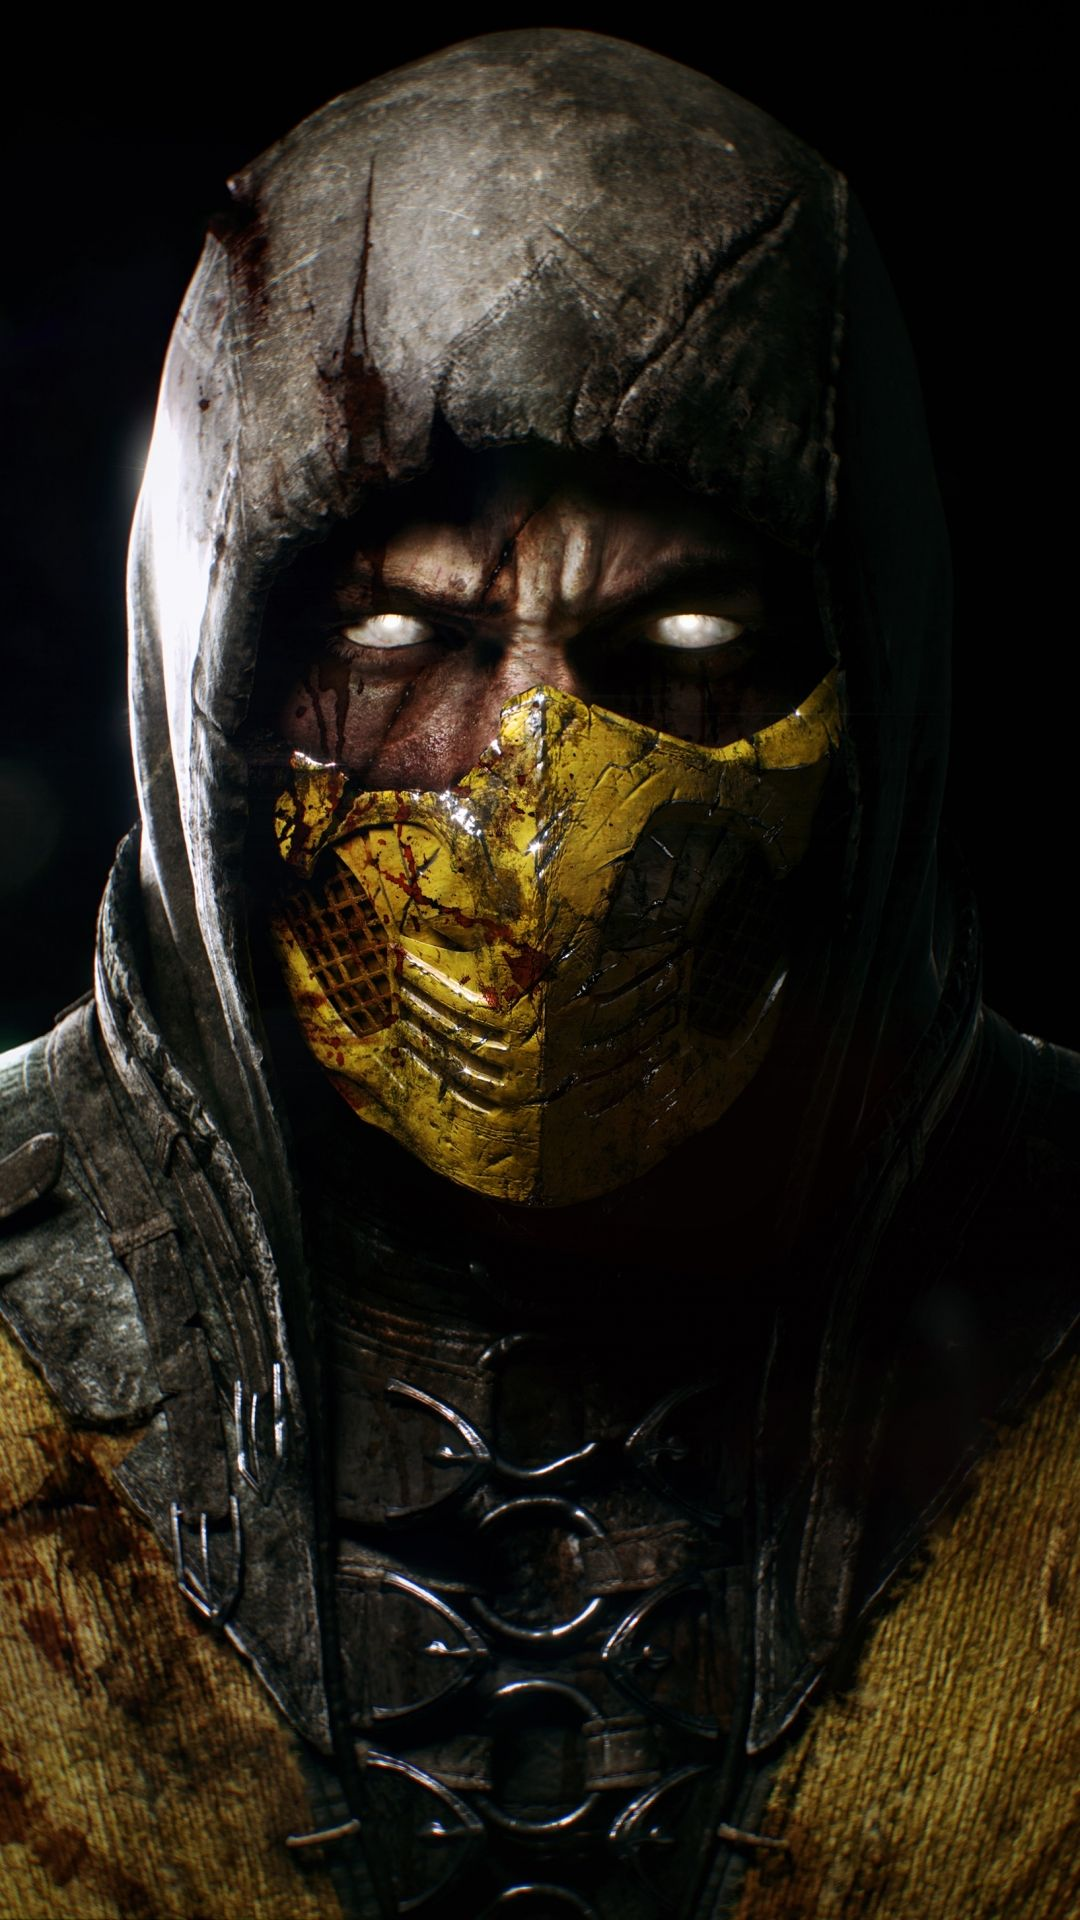 Download this wallpaper windows phone 8x video gamemortal kombat download this wallpaper windows phone 8x video gamemortal kombat x 1080x1920 for all your phones and tablets voltagebd Choice Image